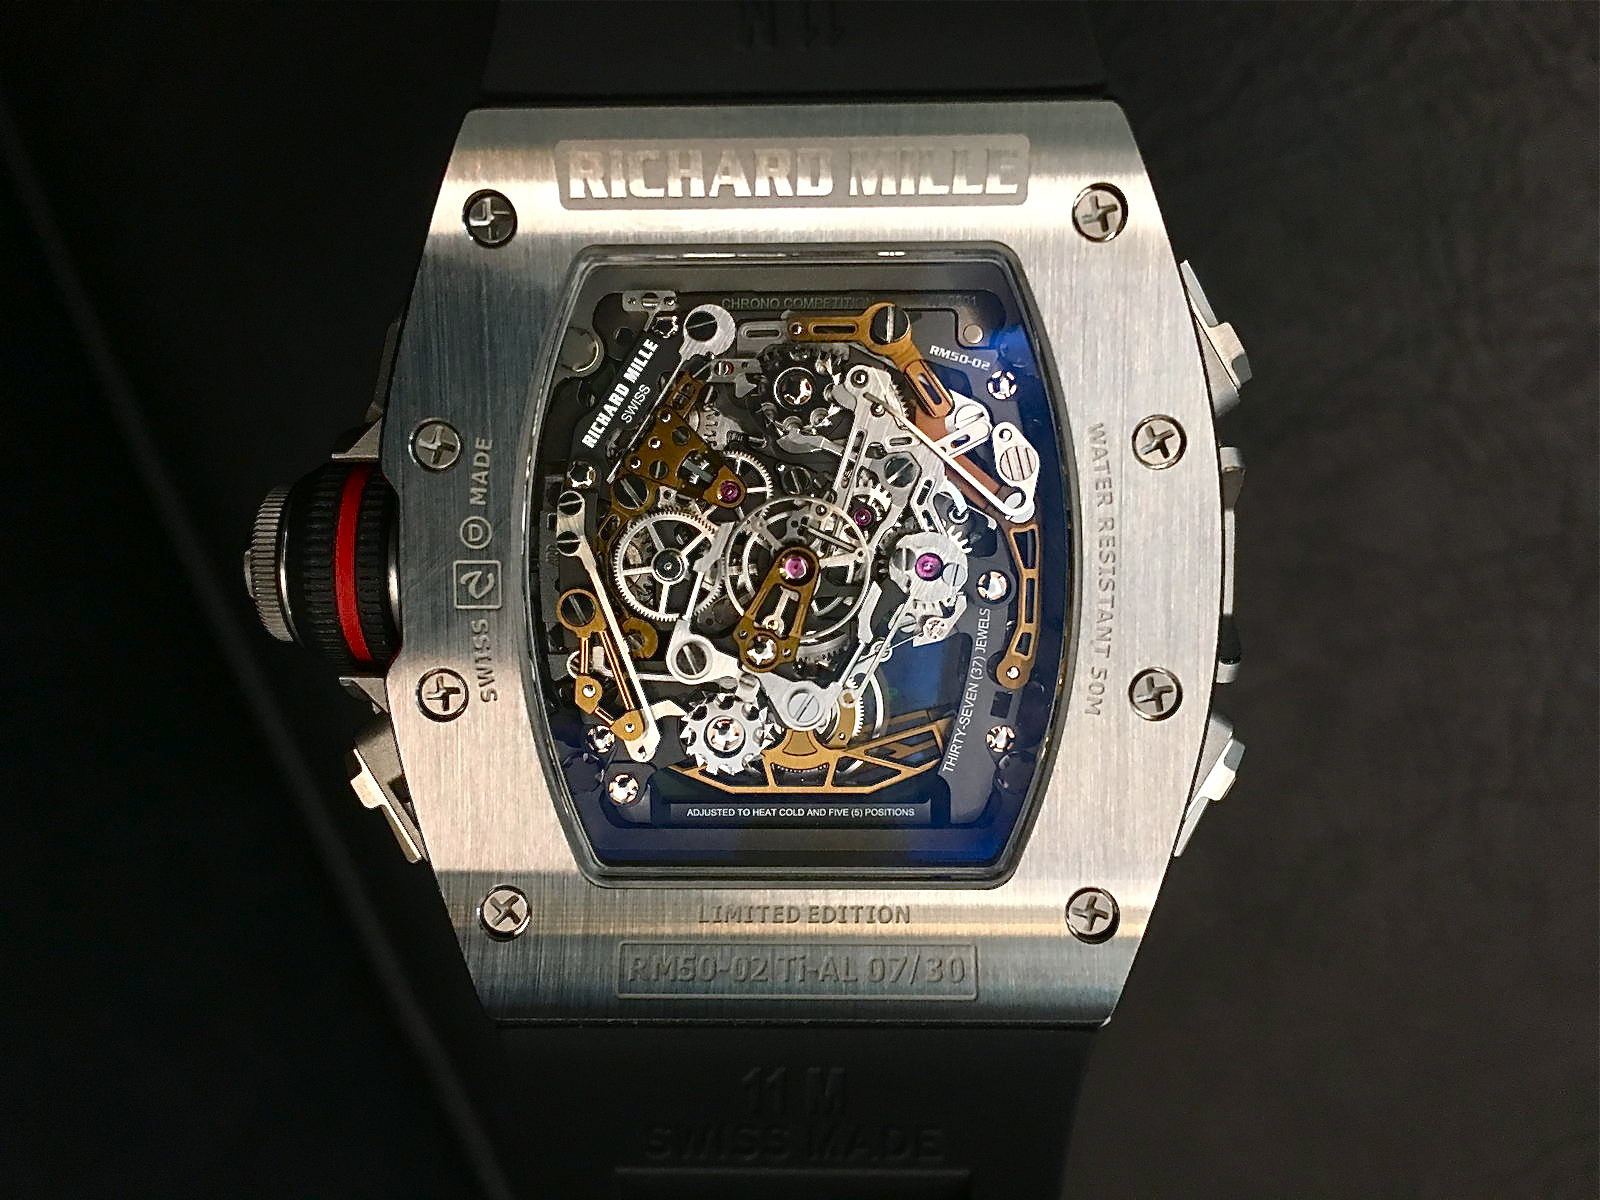 Rückseite des Richard Mille RM 50-02 ACJ Tourbillon Split Seconds Chronographen.